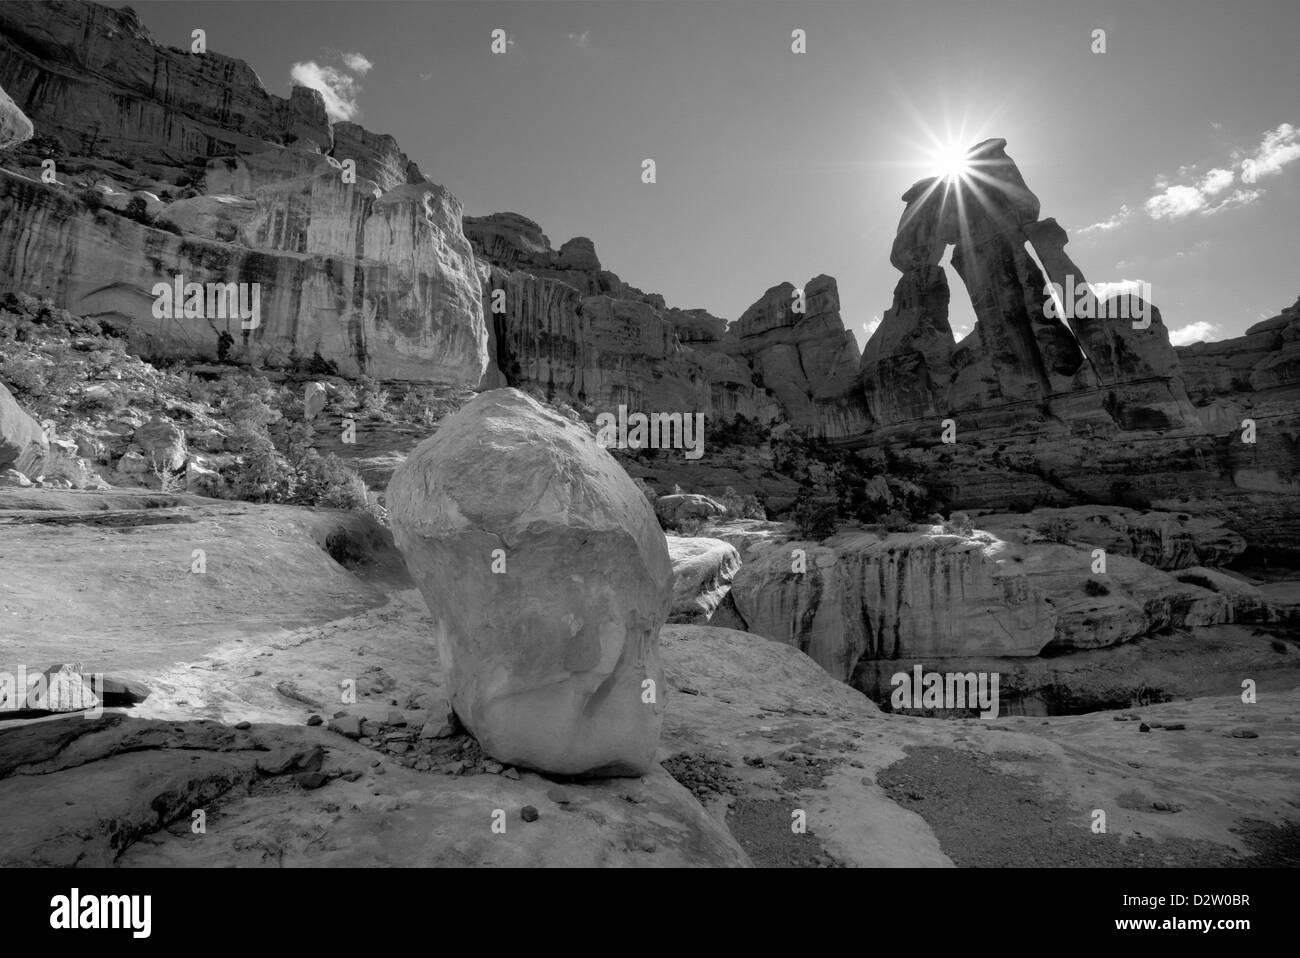 UT00232-00...UTAH - Sun coming over Druid Arch in the Needles District of Canyonlands National Park. - Stock Image